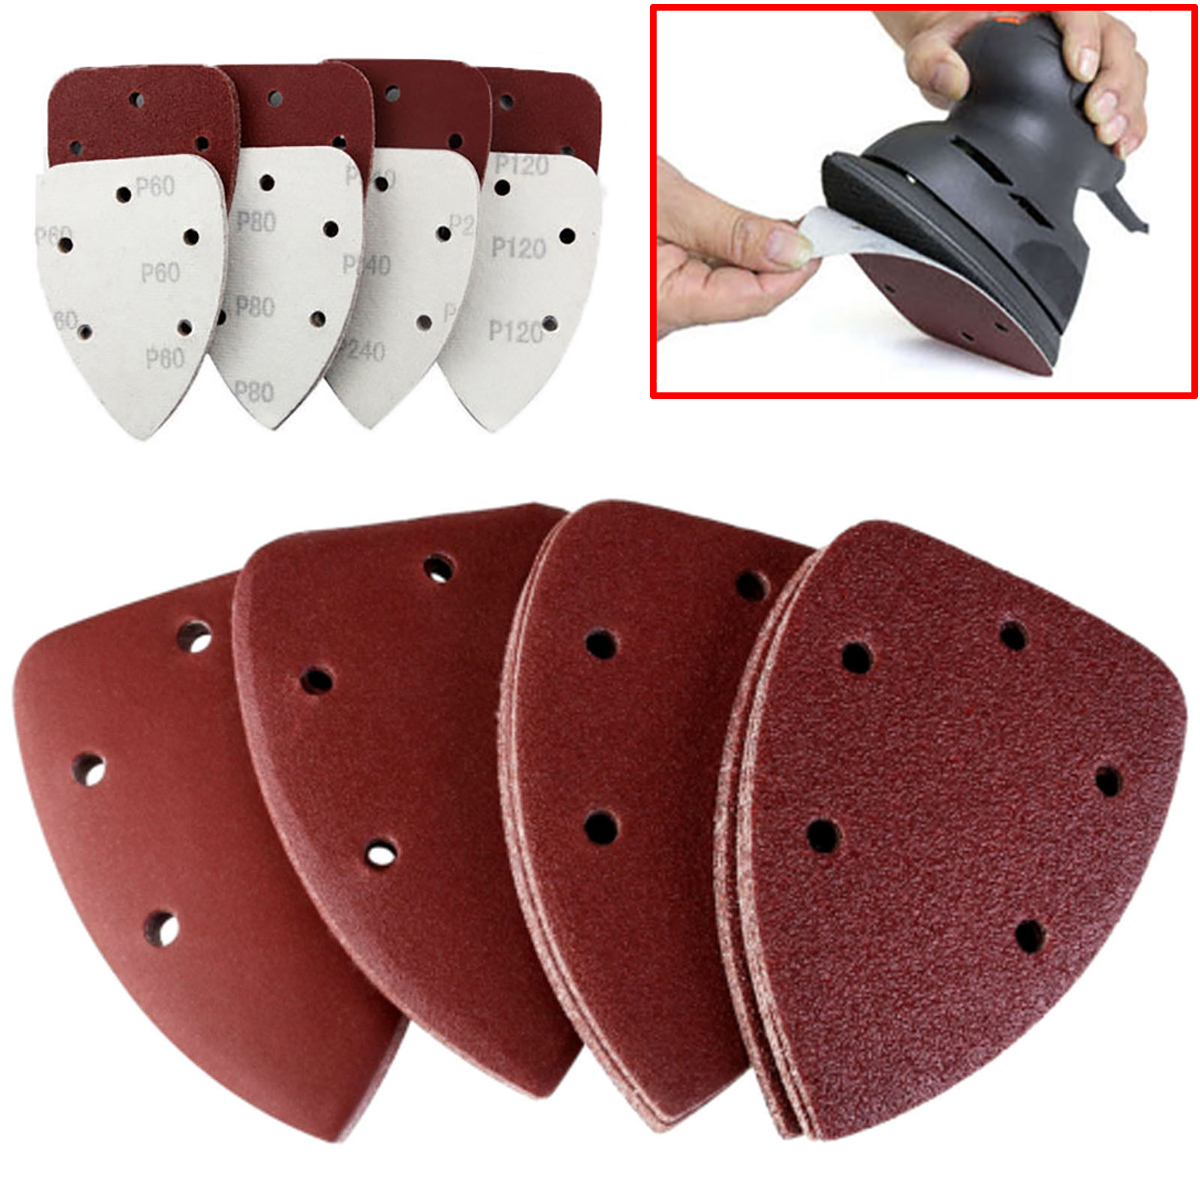 40pcs New Sanding Pads Mouse Sandpaper Disc 40/80/120/240 Grit 140x100mm For Polishing Tools купить в Москве 2019